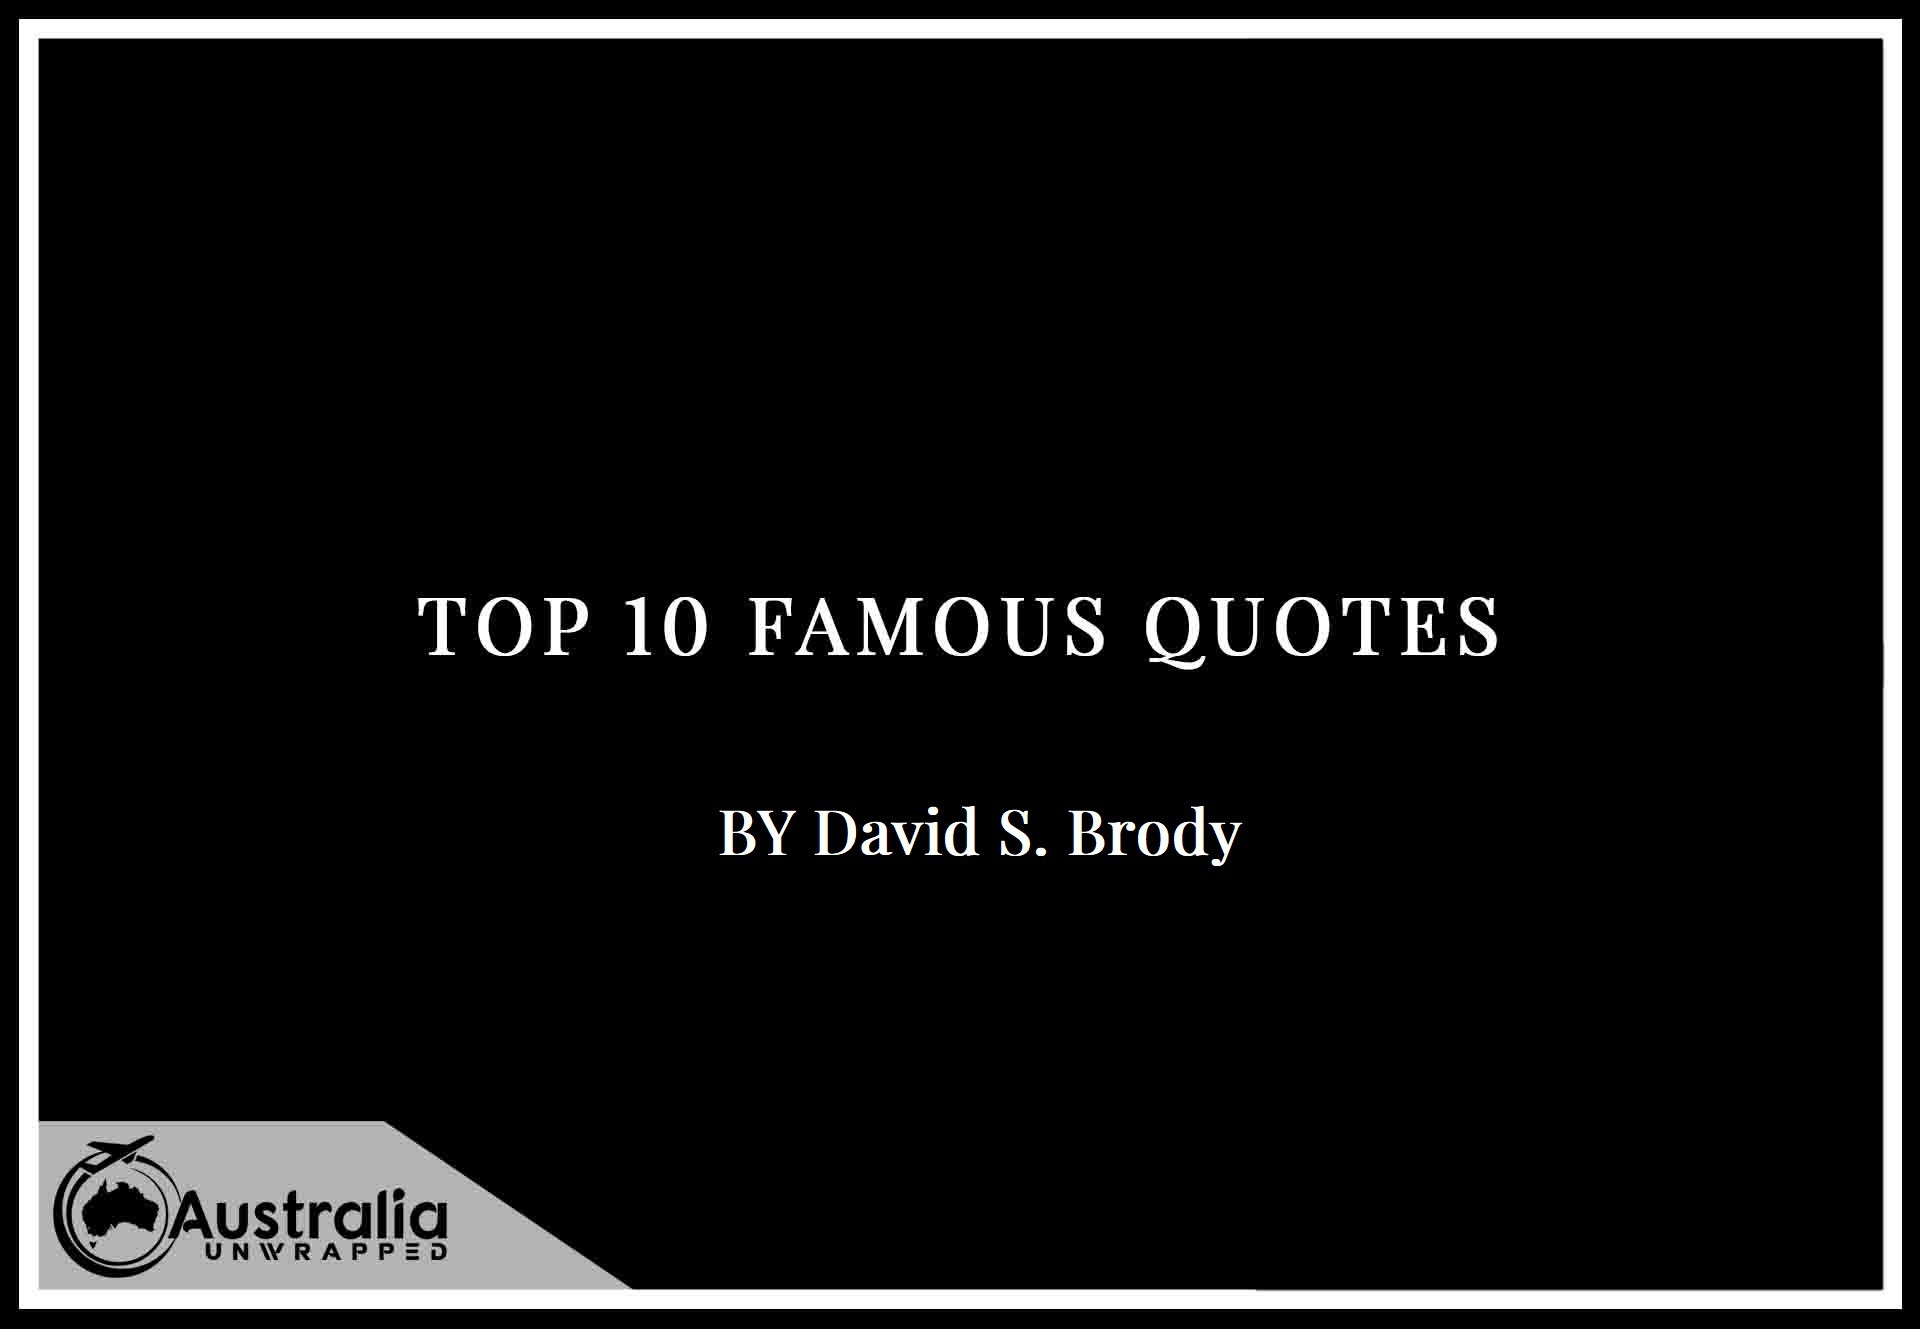 Top 10 Famous Quotes by Author David S. Brody